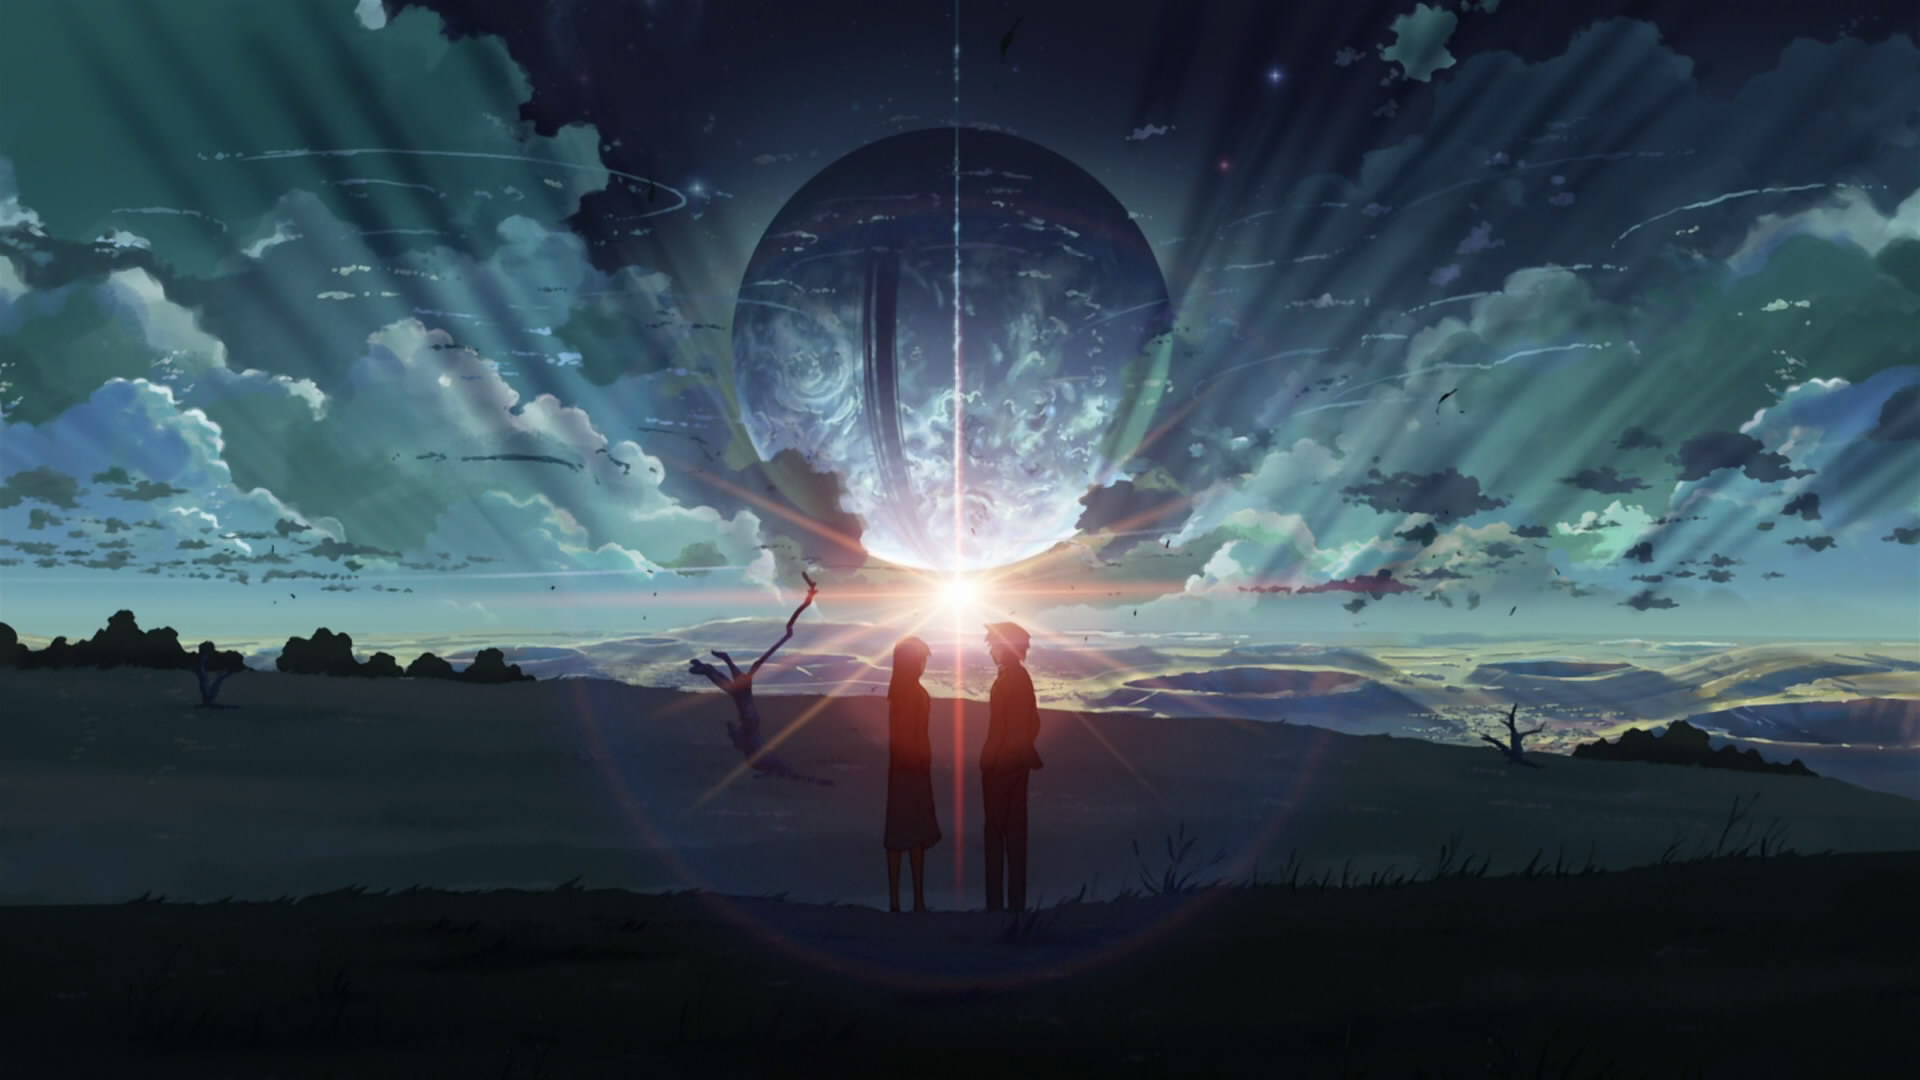 161 5 Centimeters Per Second HD Wallpapers